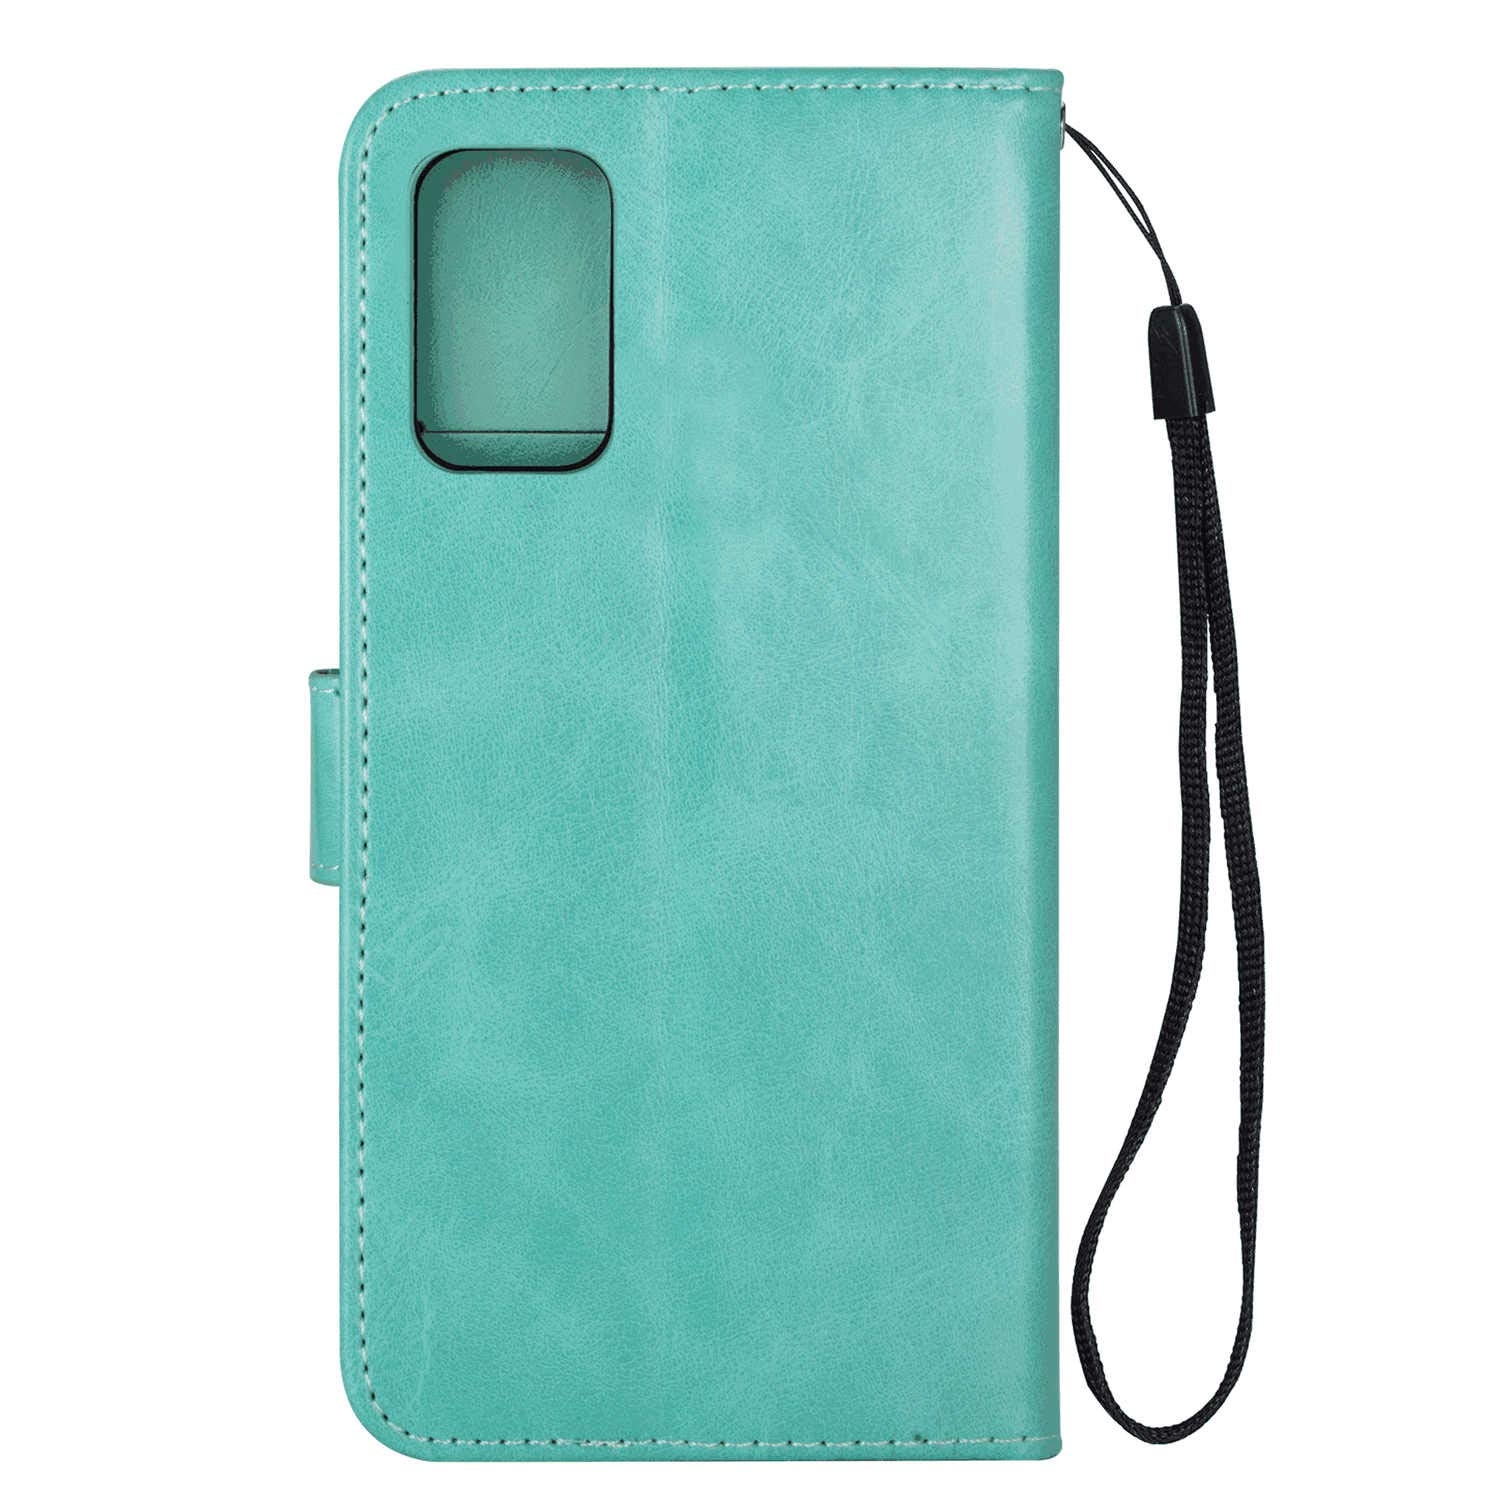 WaiterQA Samsung Galaxy S20 Plus S20 Flip Case Leather Cover Cell Phone Cover Extra-Shockproof Business Kickstand Card Holders Horse Grain Card Slot Pure Color Green